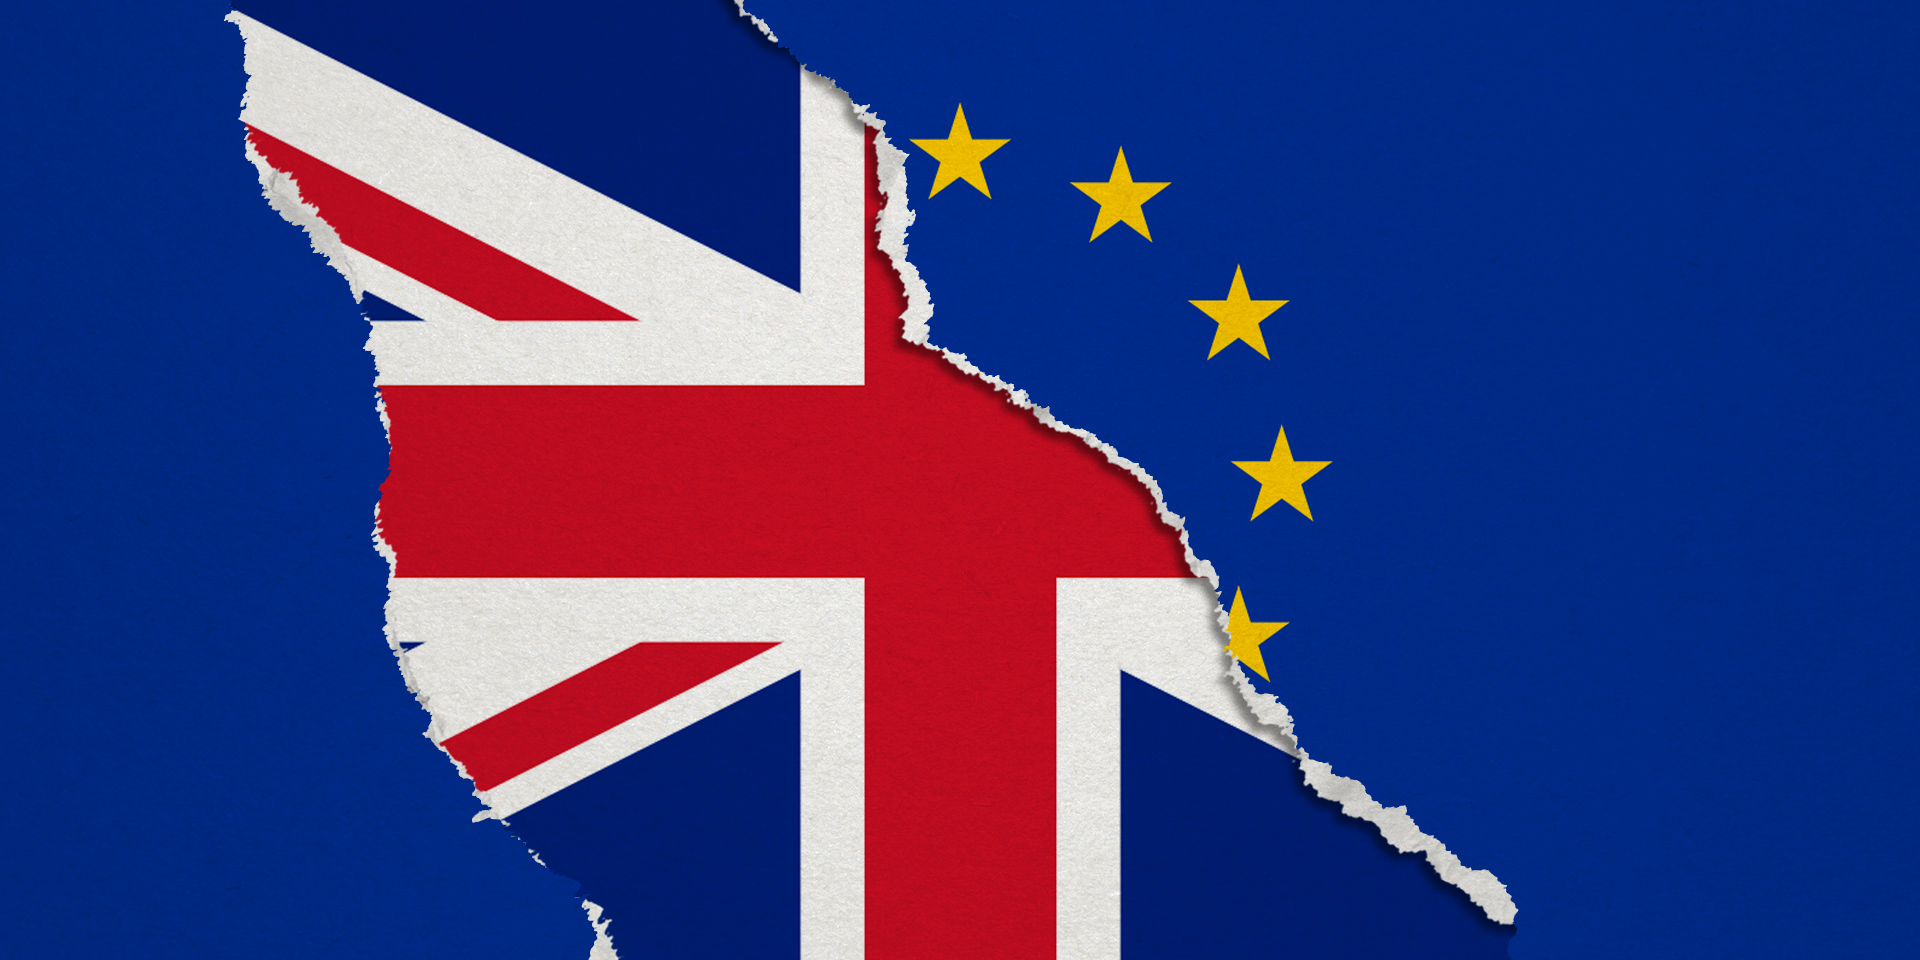 How Should Christians Think About Brexit?